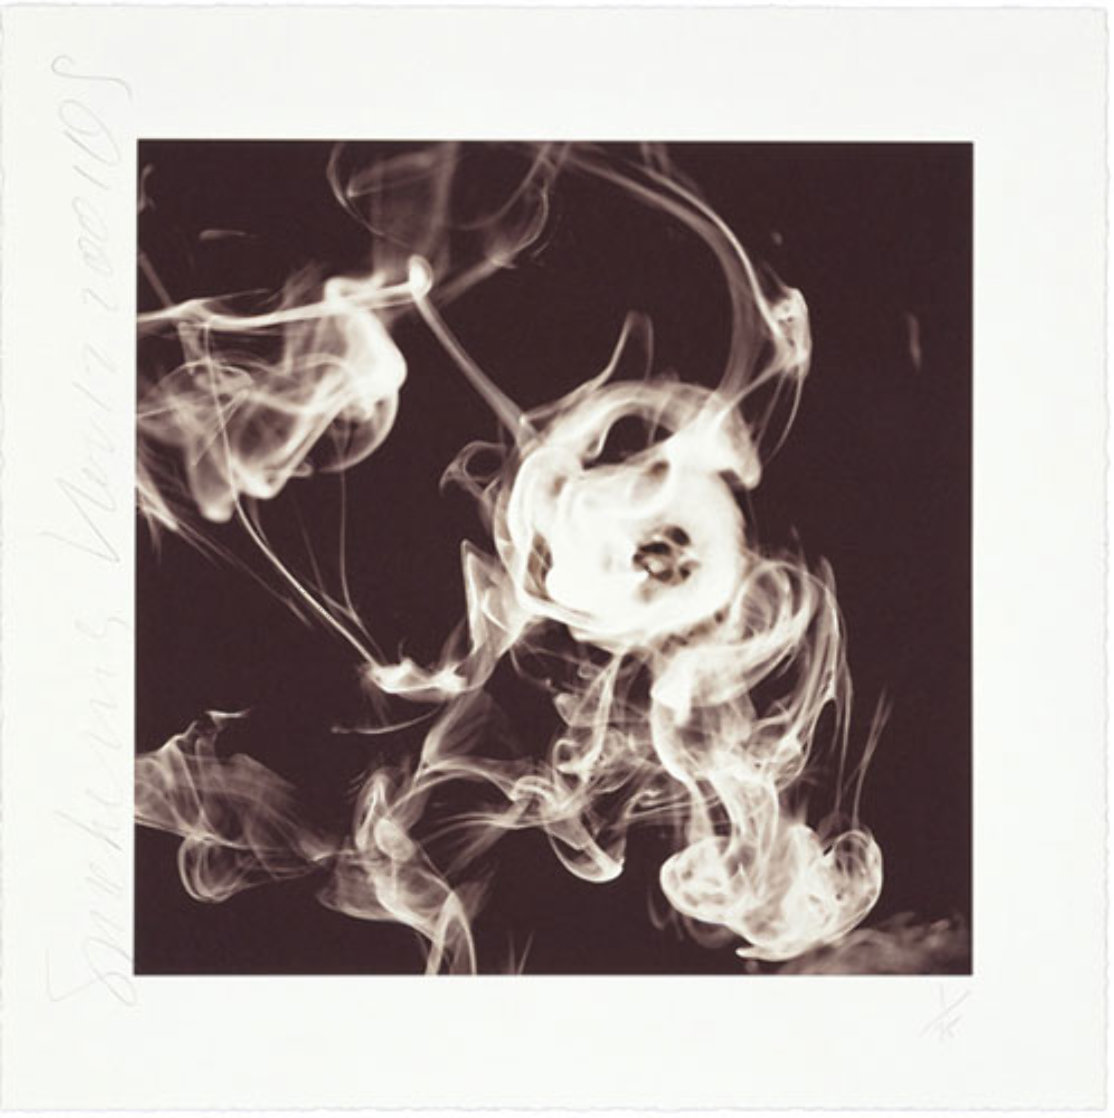 Smoke Rings Suite of 3 2001 Suite of 3 Limited Edition Print by Donald Sultan